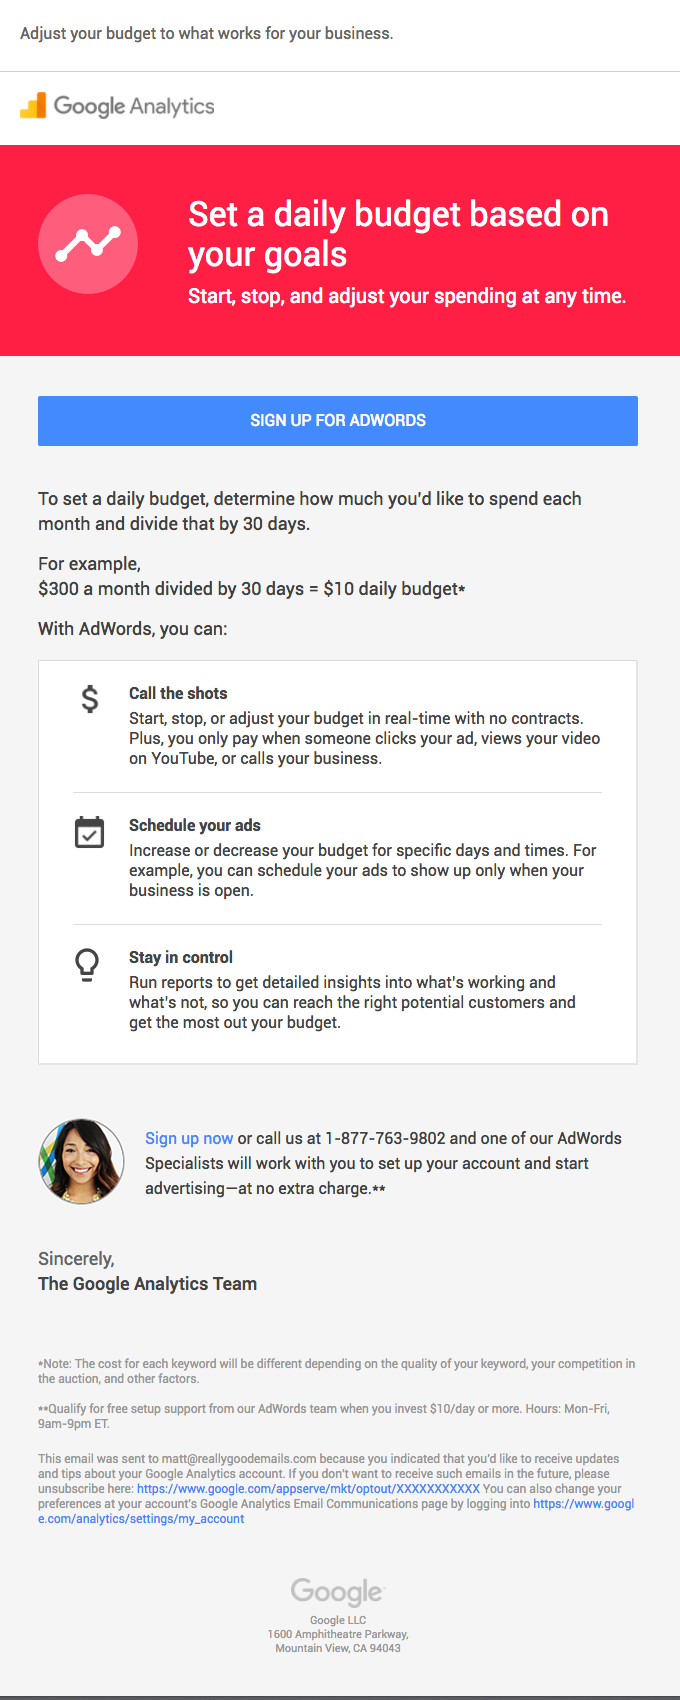 Google AdWords | Take charge of your budget